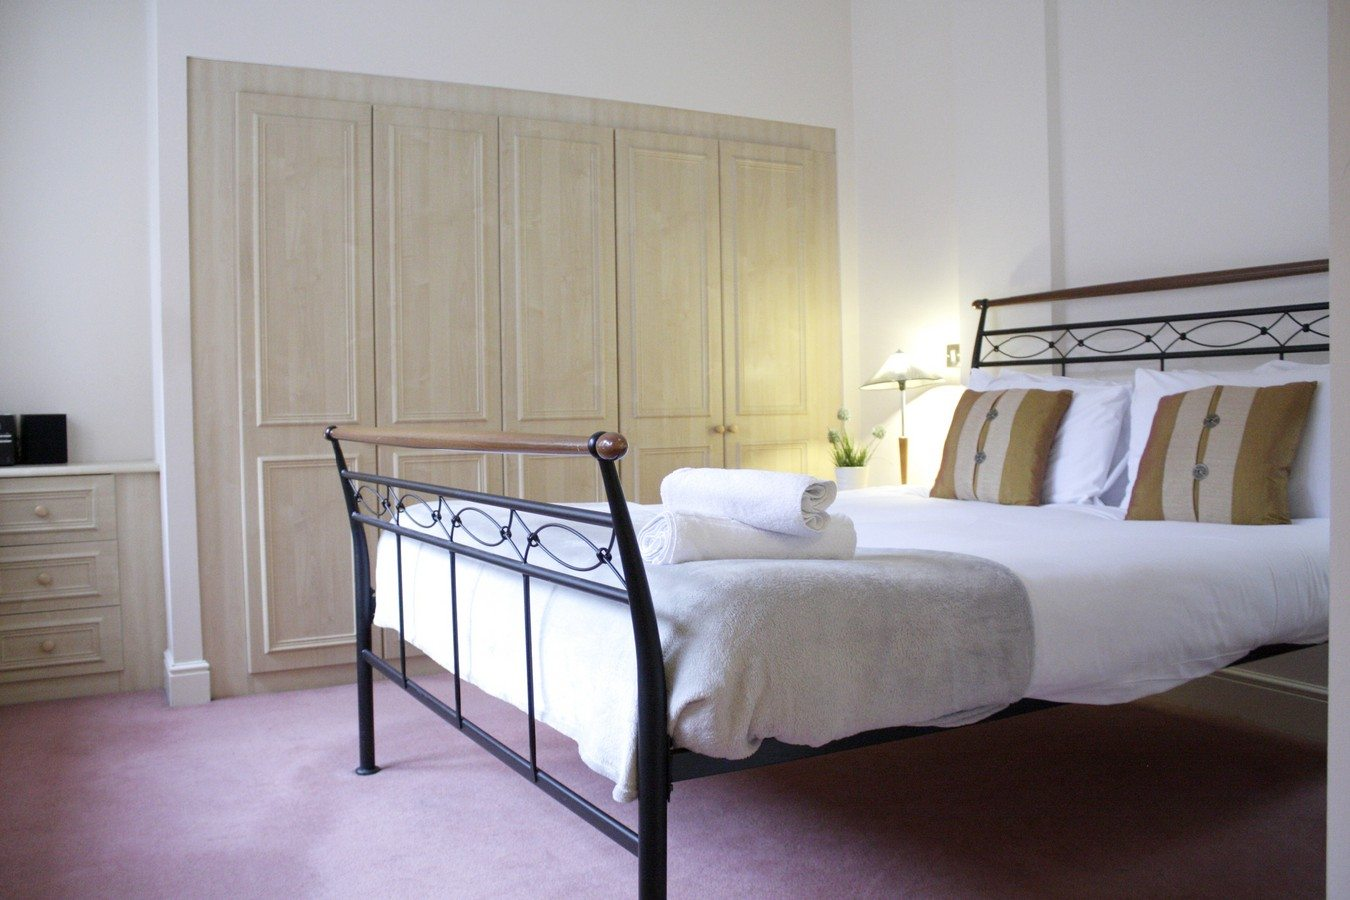 Bedroom-of-Astral-House-Serviced-Apartments-Liverpool-Street---Corporate-Accommodation-in-the-City-of-London-26